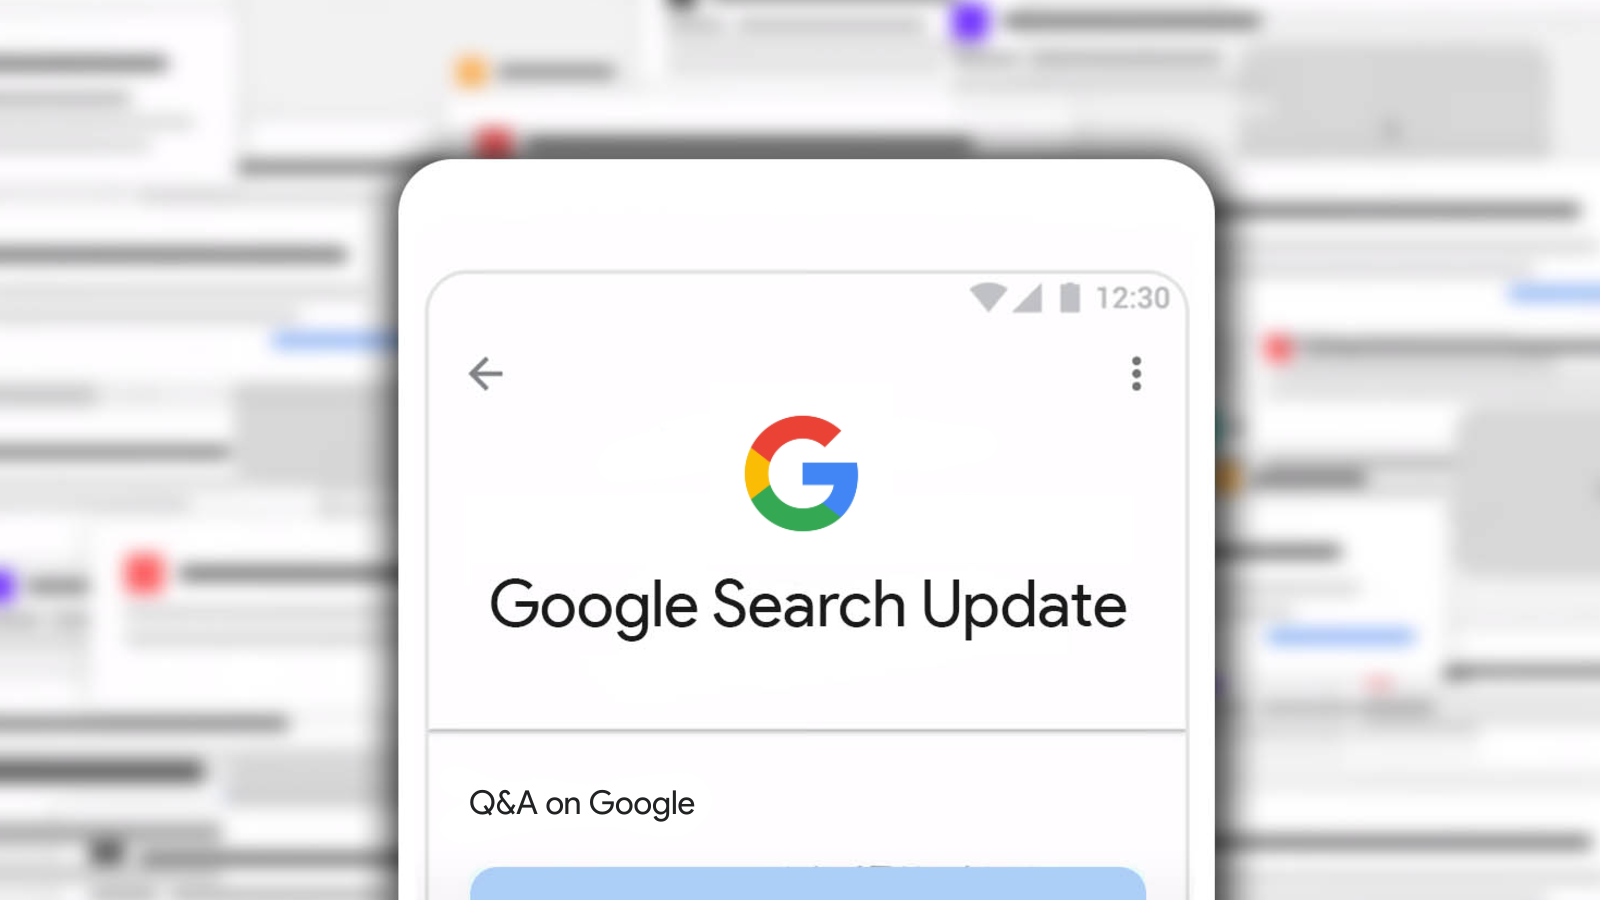 Ask and answer questions feature in Google Search shutting down